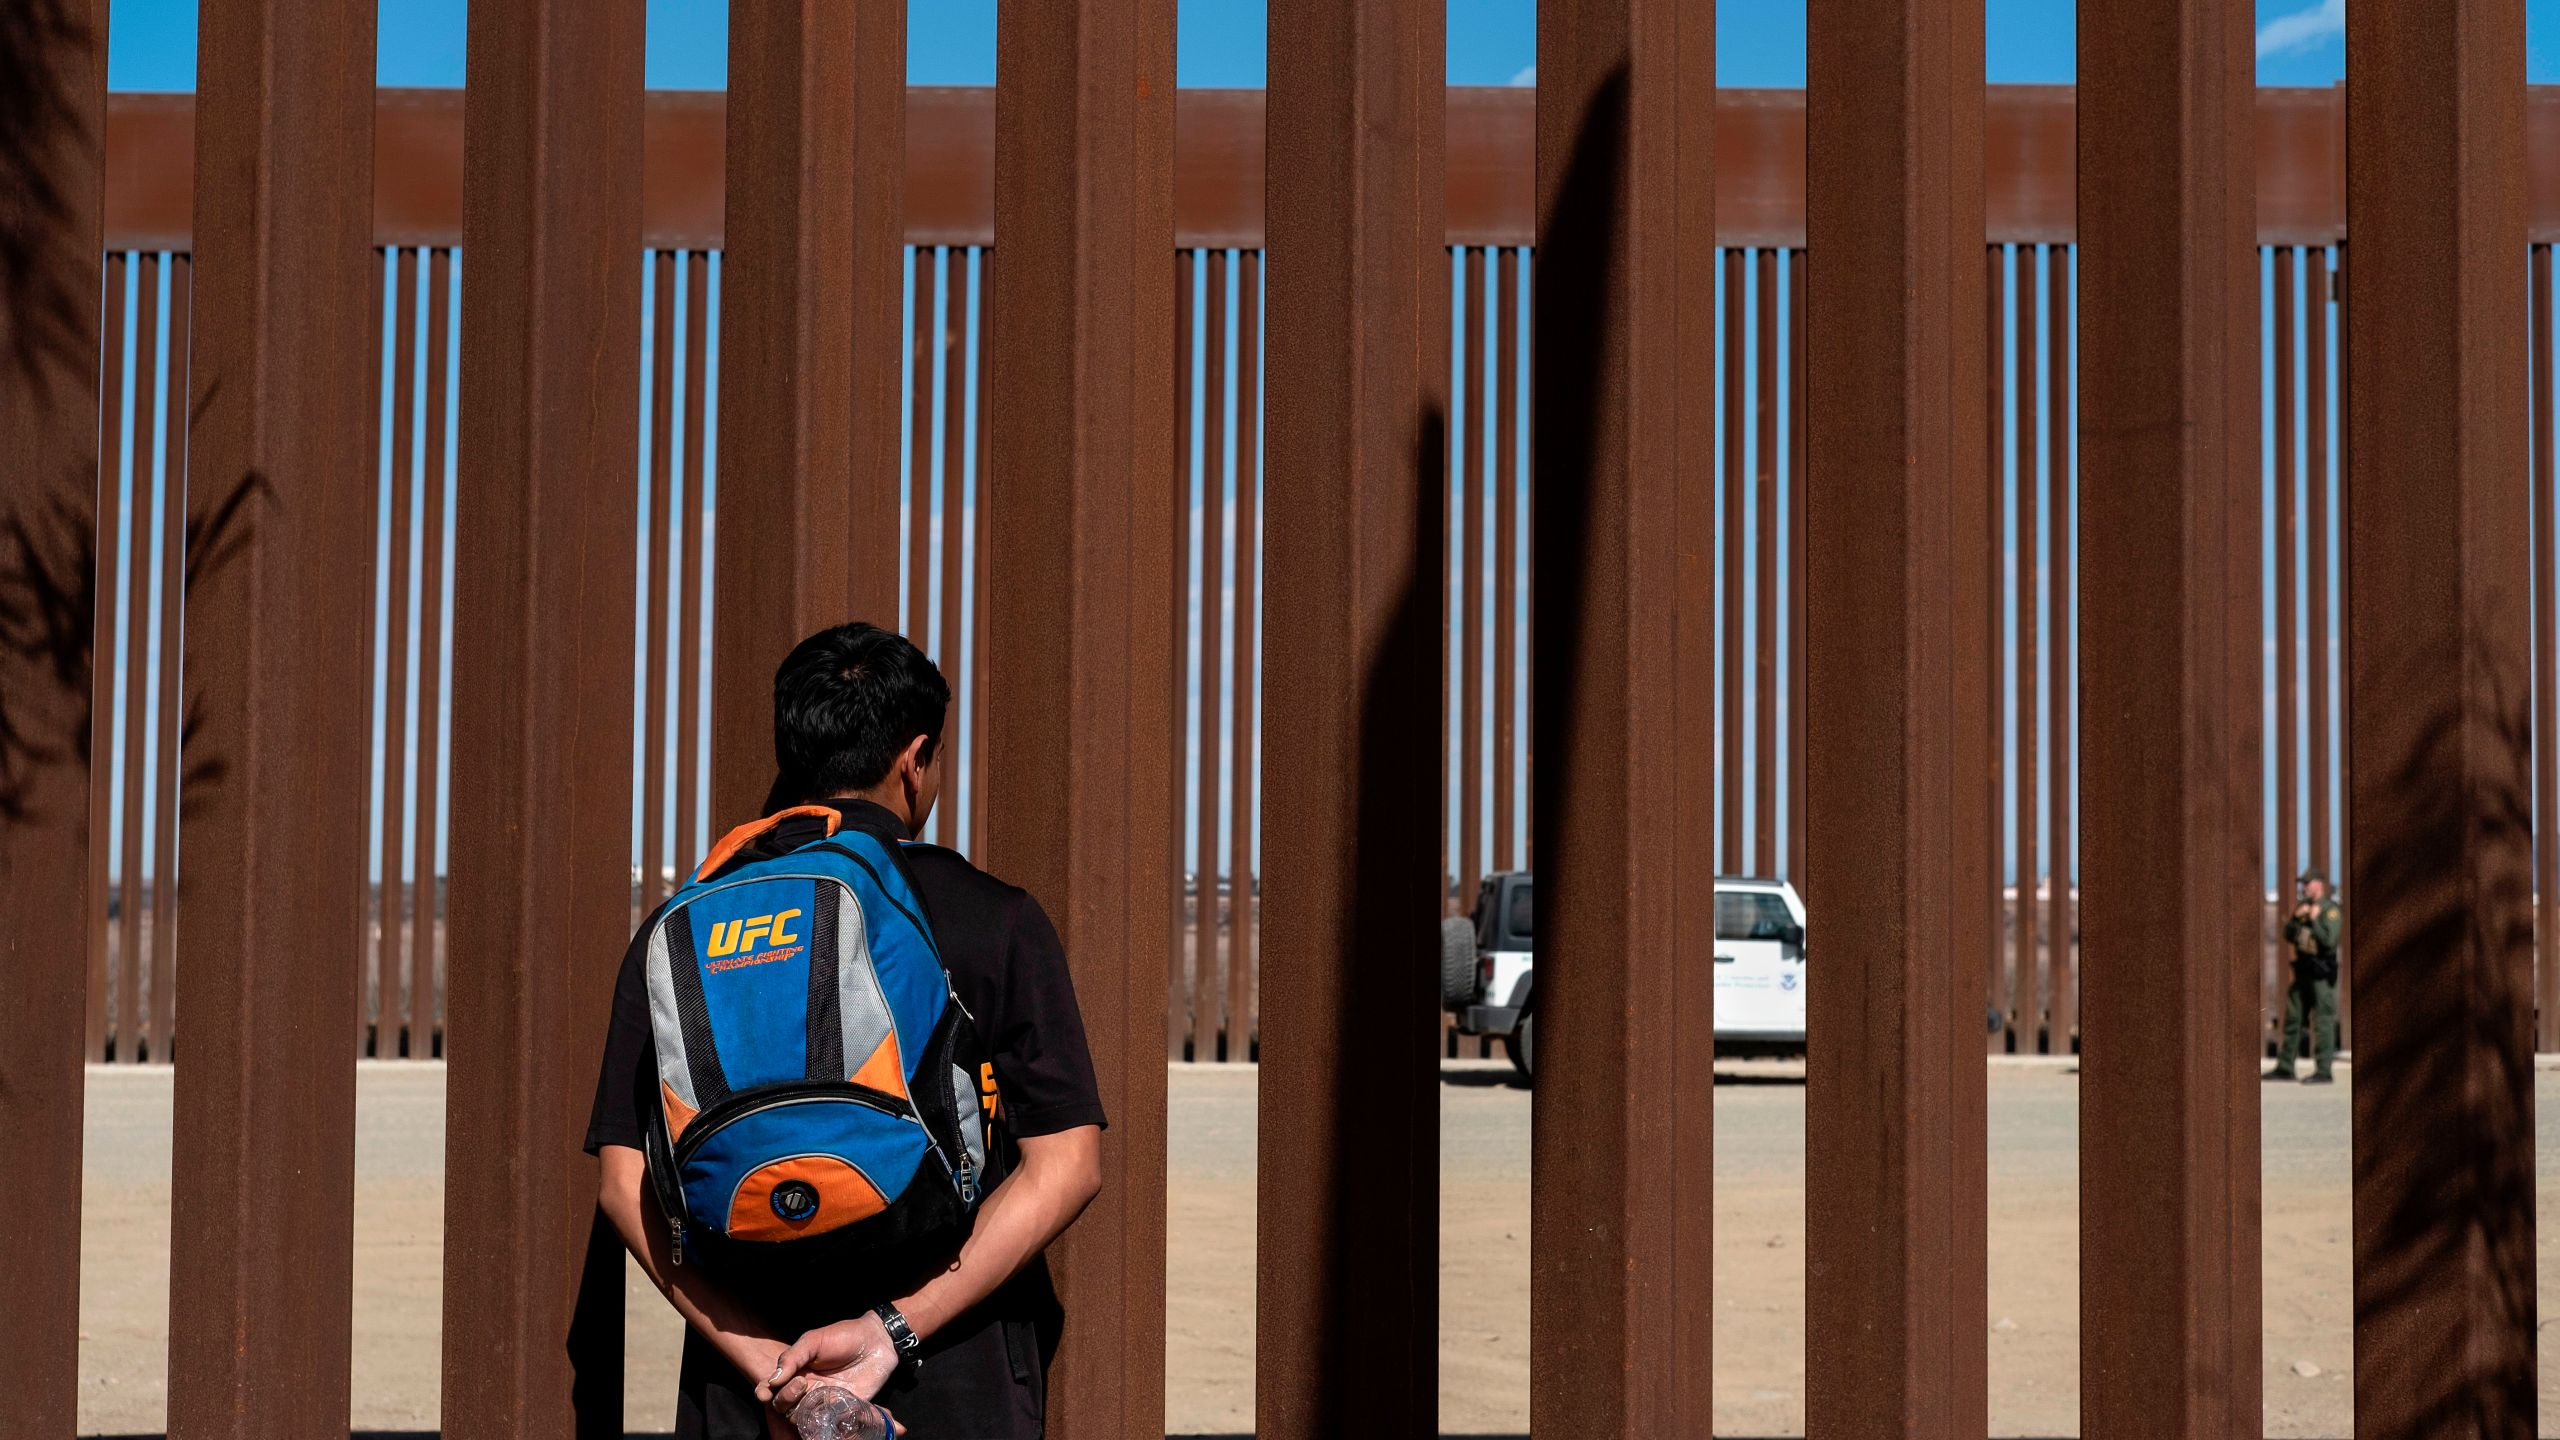 A migrant from Guatemala watches border patrol officers through the border fence at the Mexican side of the U.S.-Mexico border in Tijuana, Mexico, on Nov. 2, 2019. (Credit: Guillermo Arias/AFP via Getty Images)